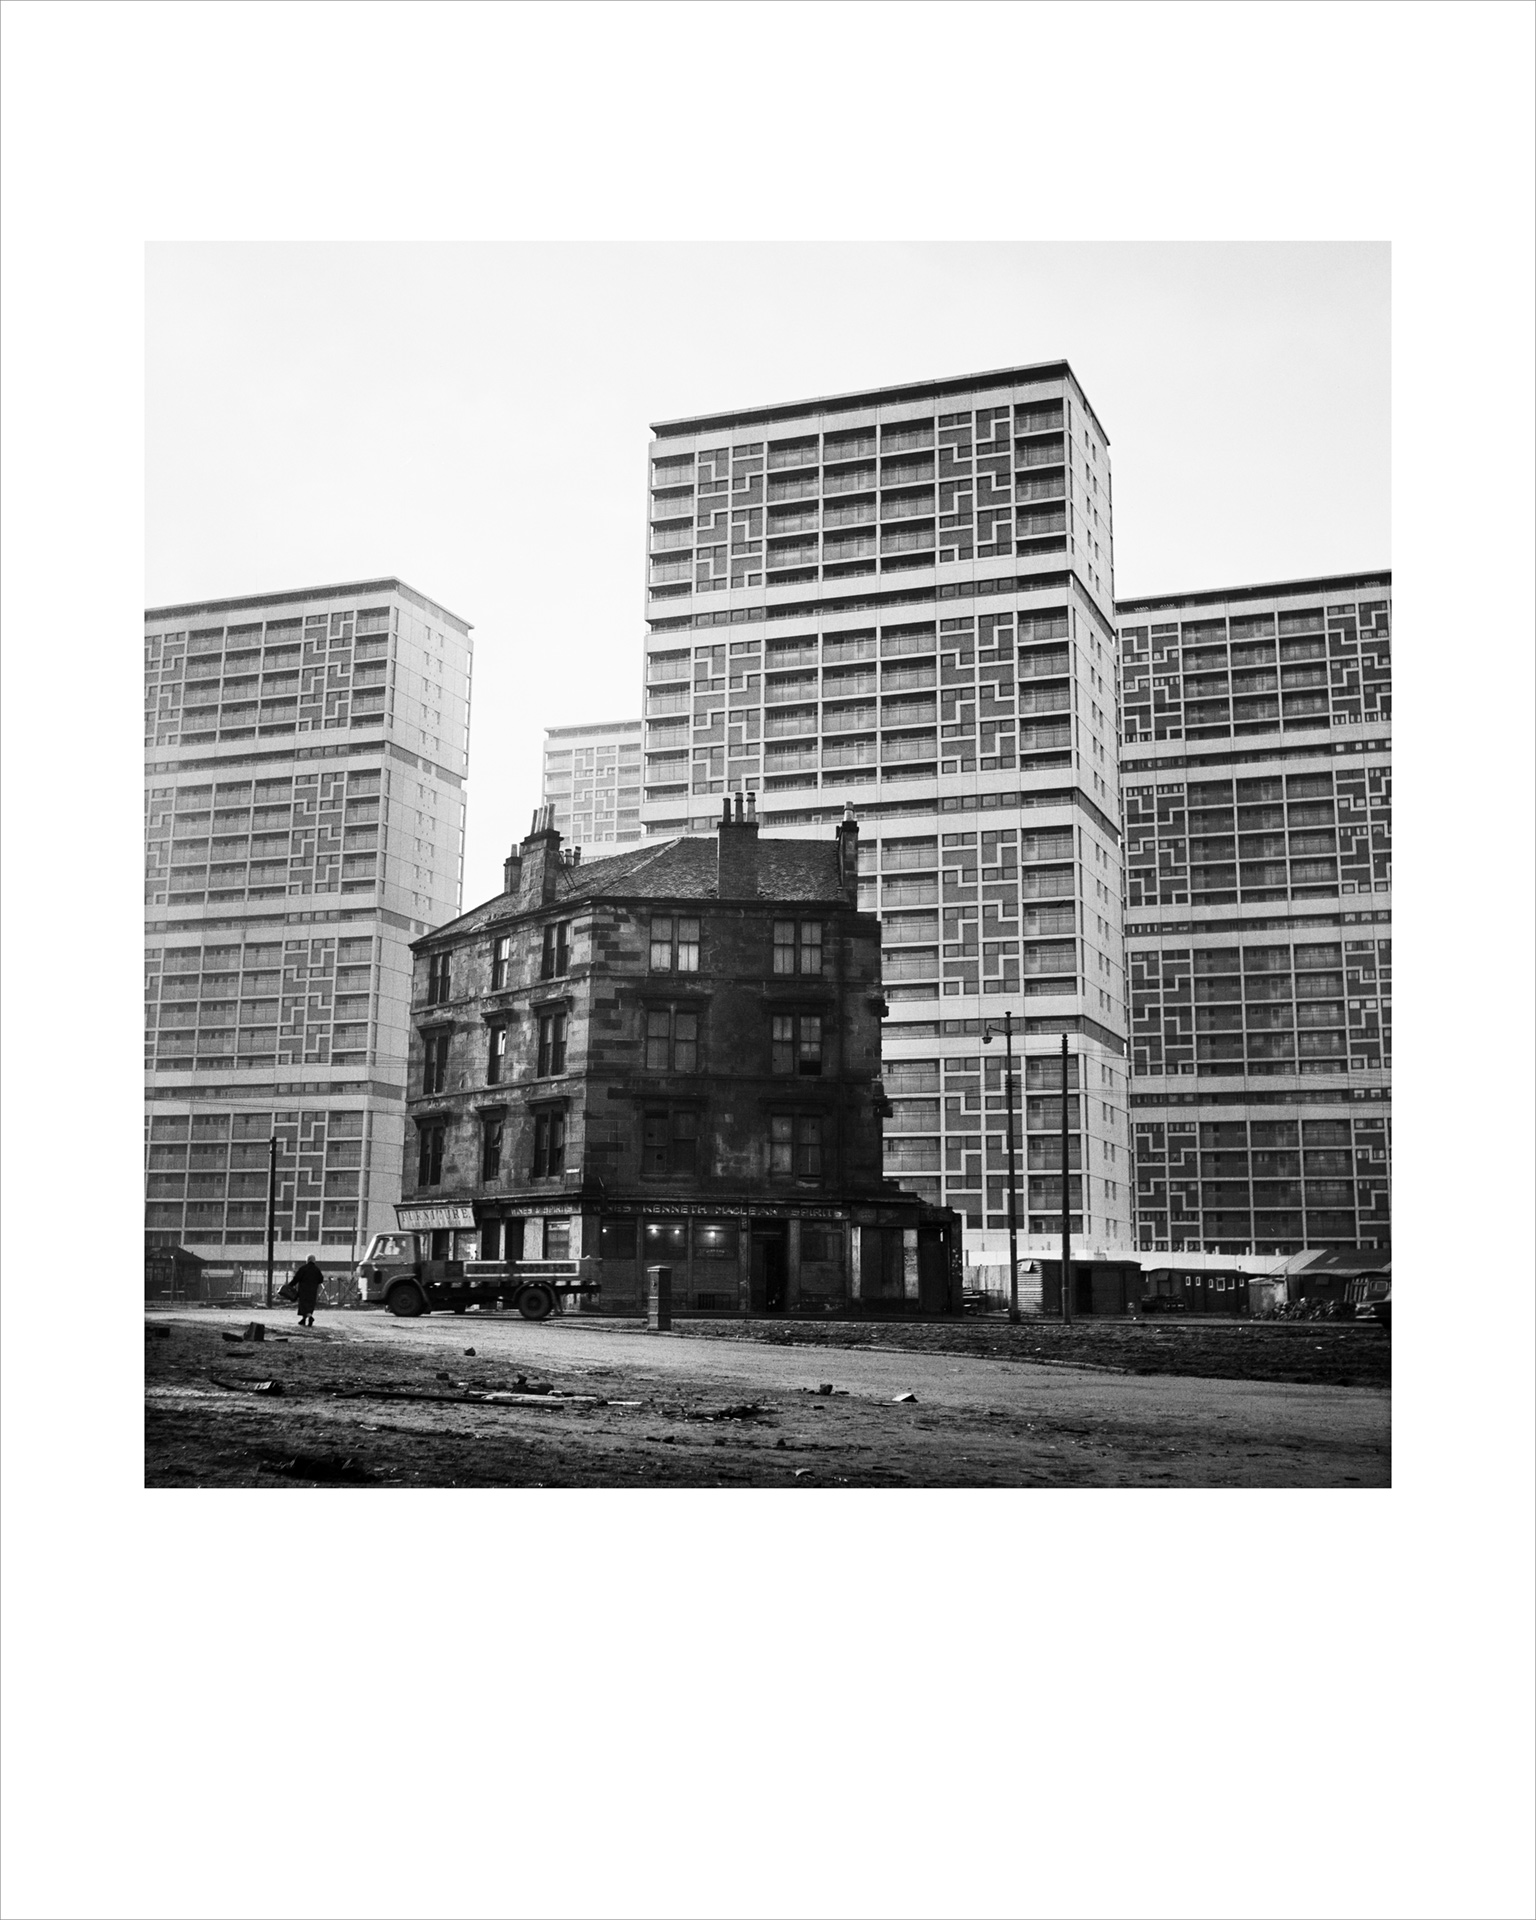 Image of The Old and the New, Gorbals (1968) by Oscar Marzaroli